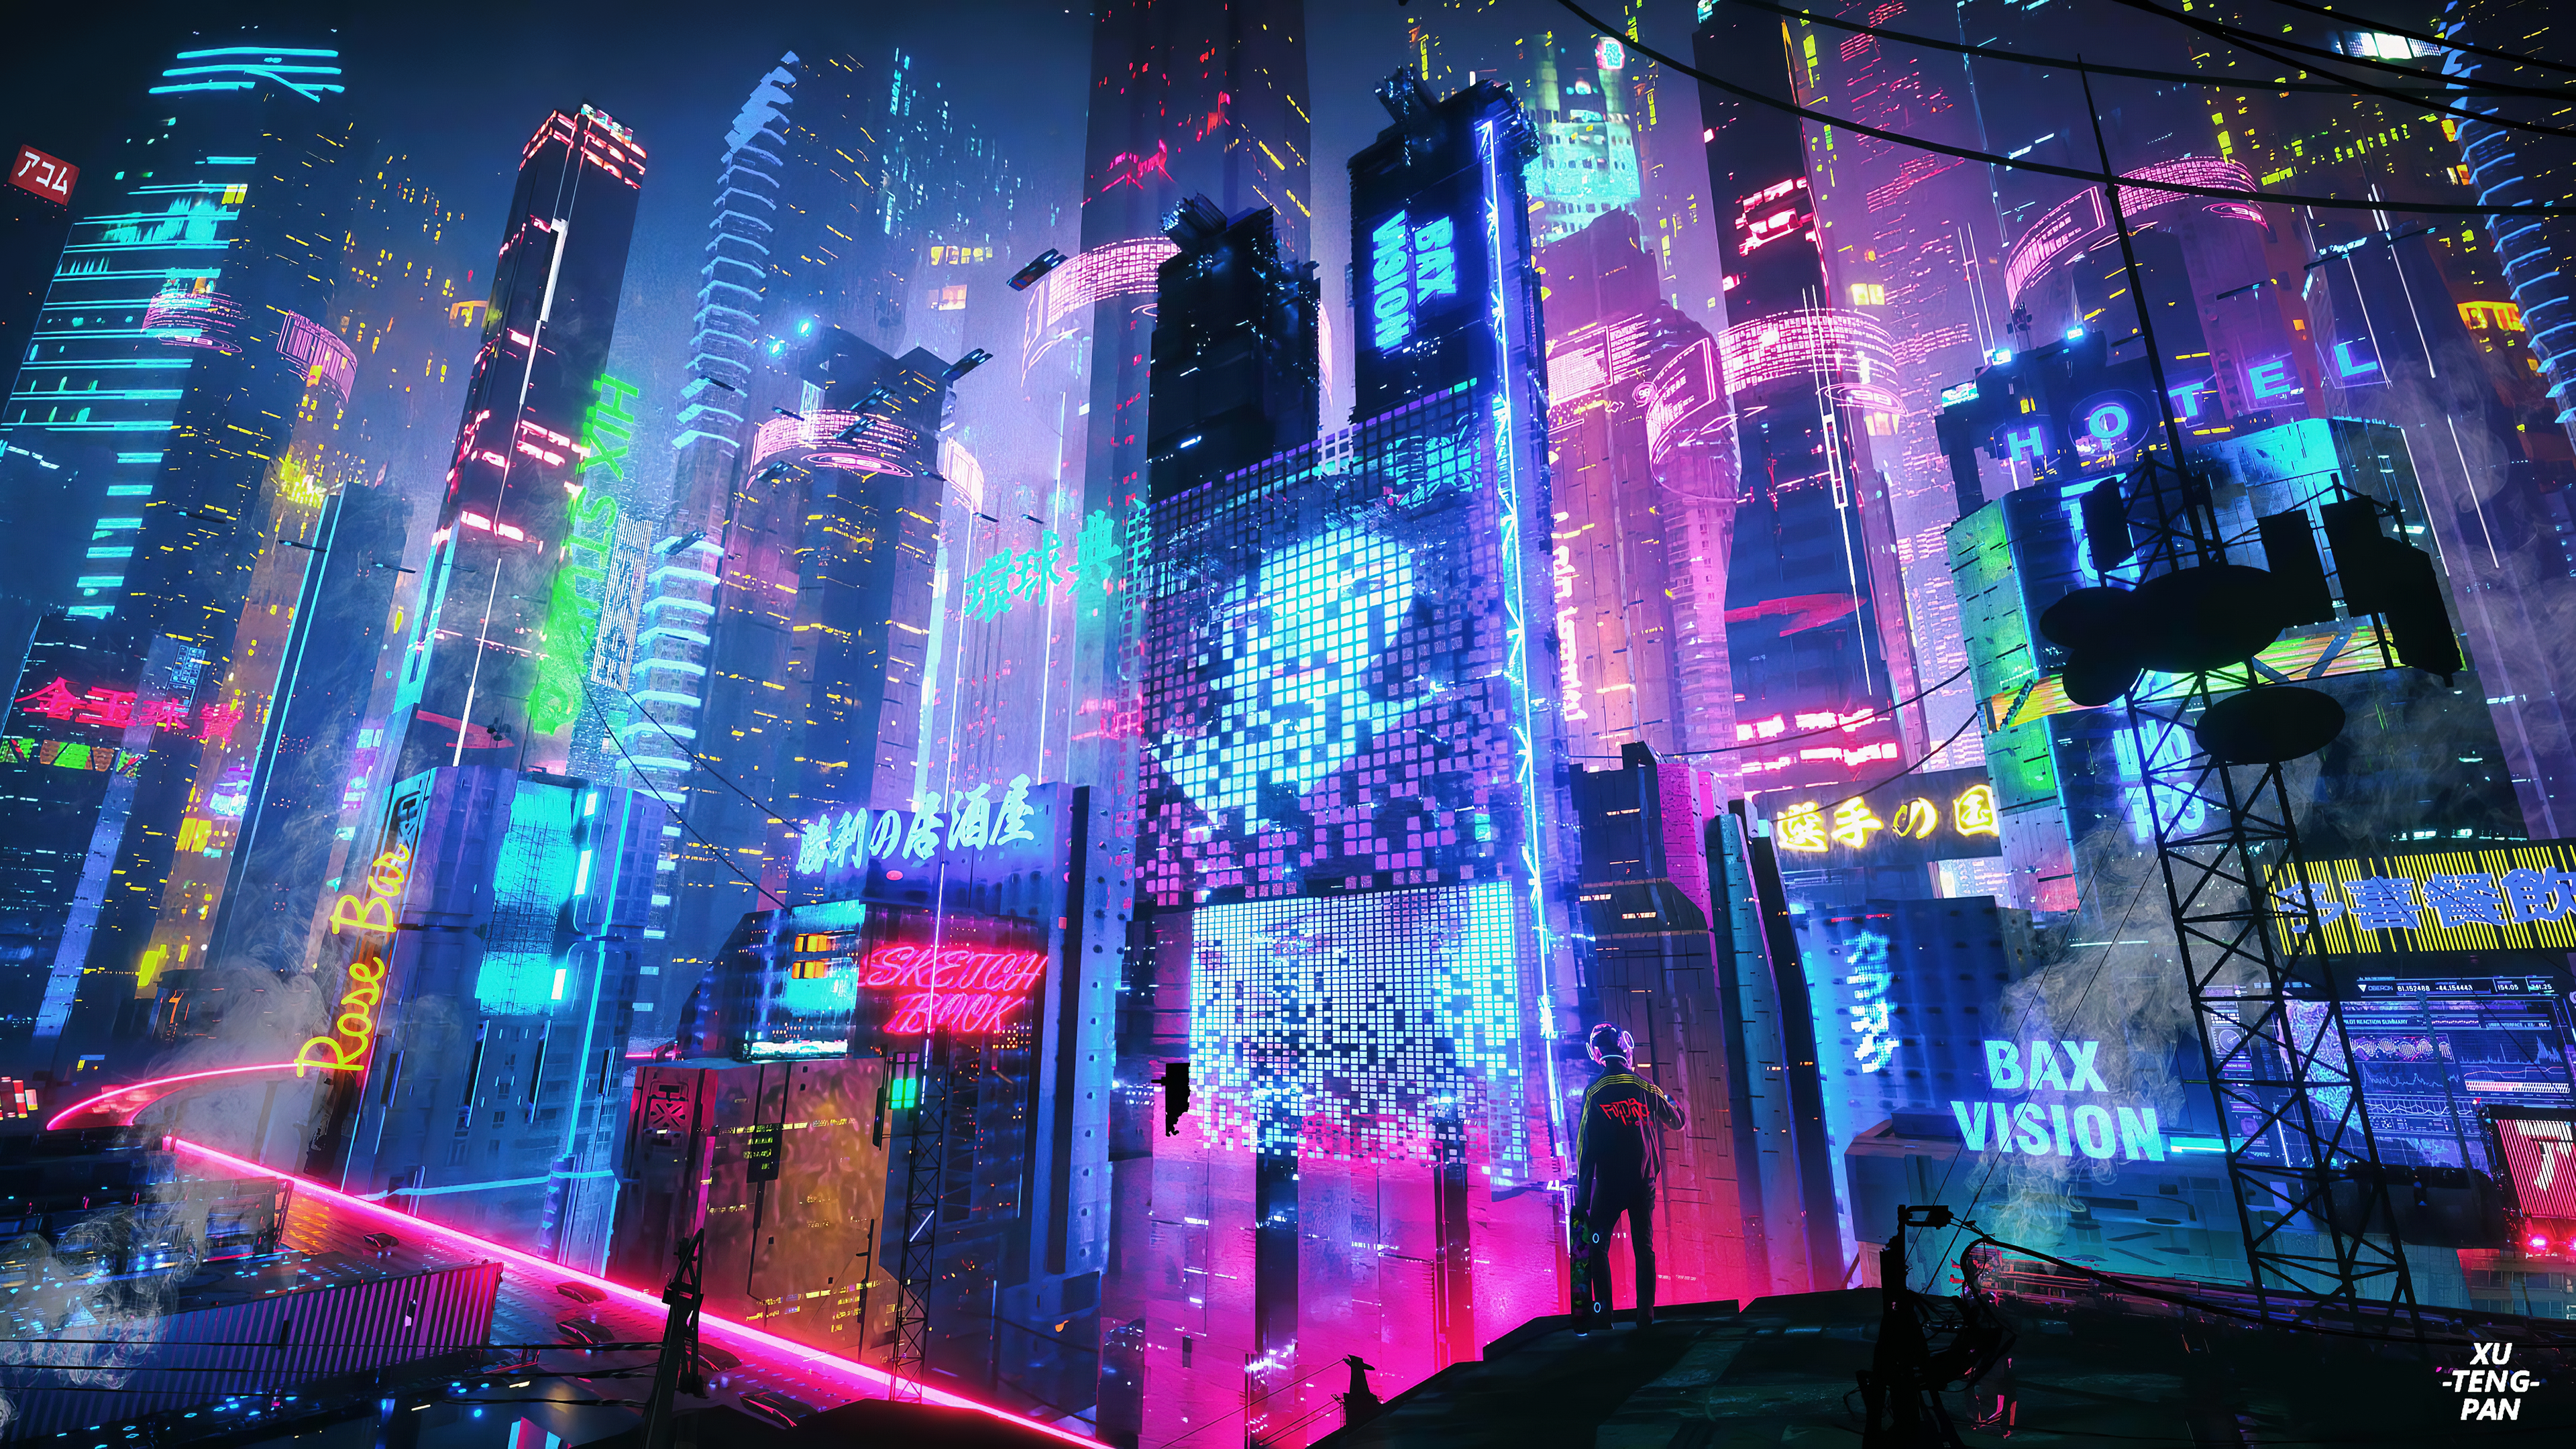 City By Xuteng Pan 3840x2160 Desktop Wallpaper Art Aesthetic Desktop Wallpaper Neon Wallpaper